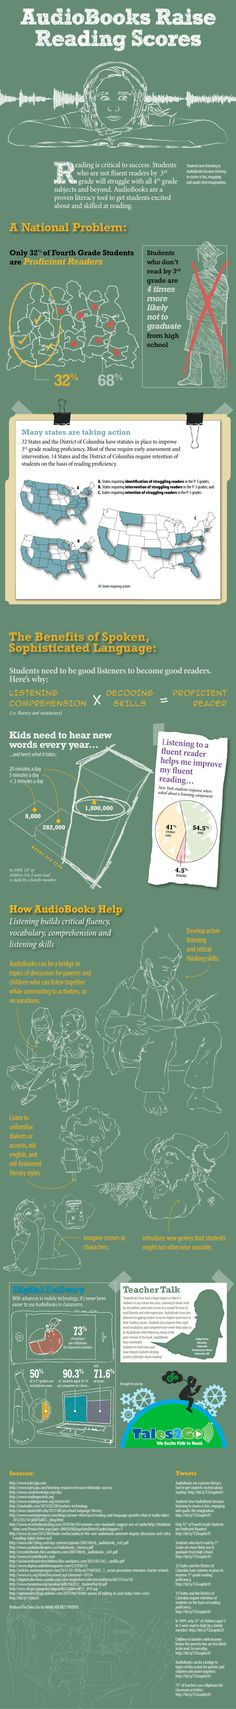 Audio books and reading scores infographic.